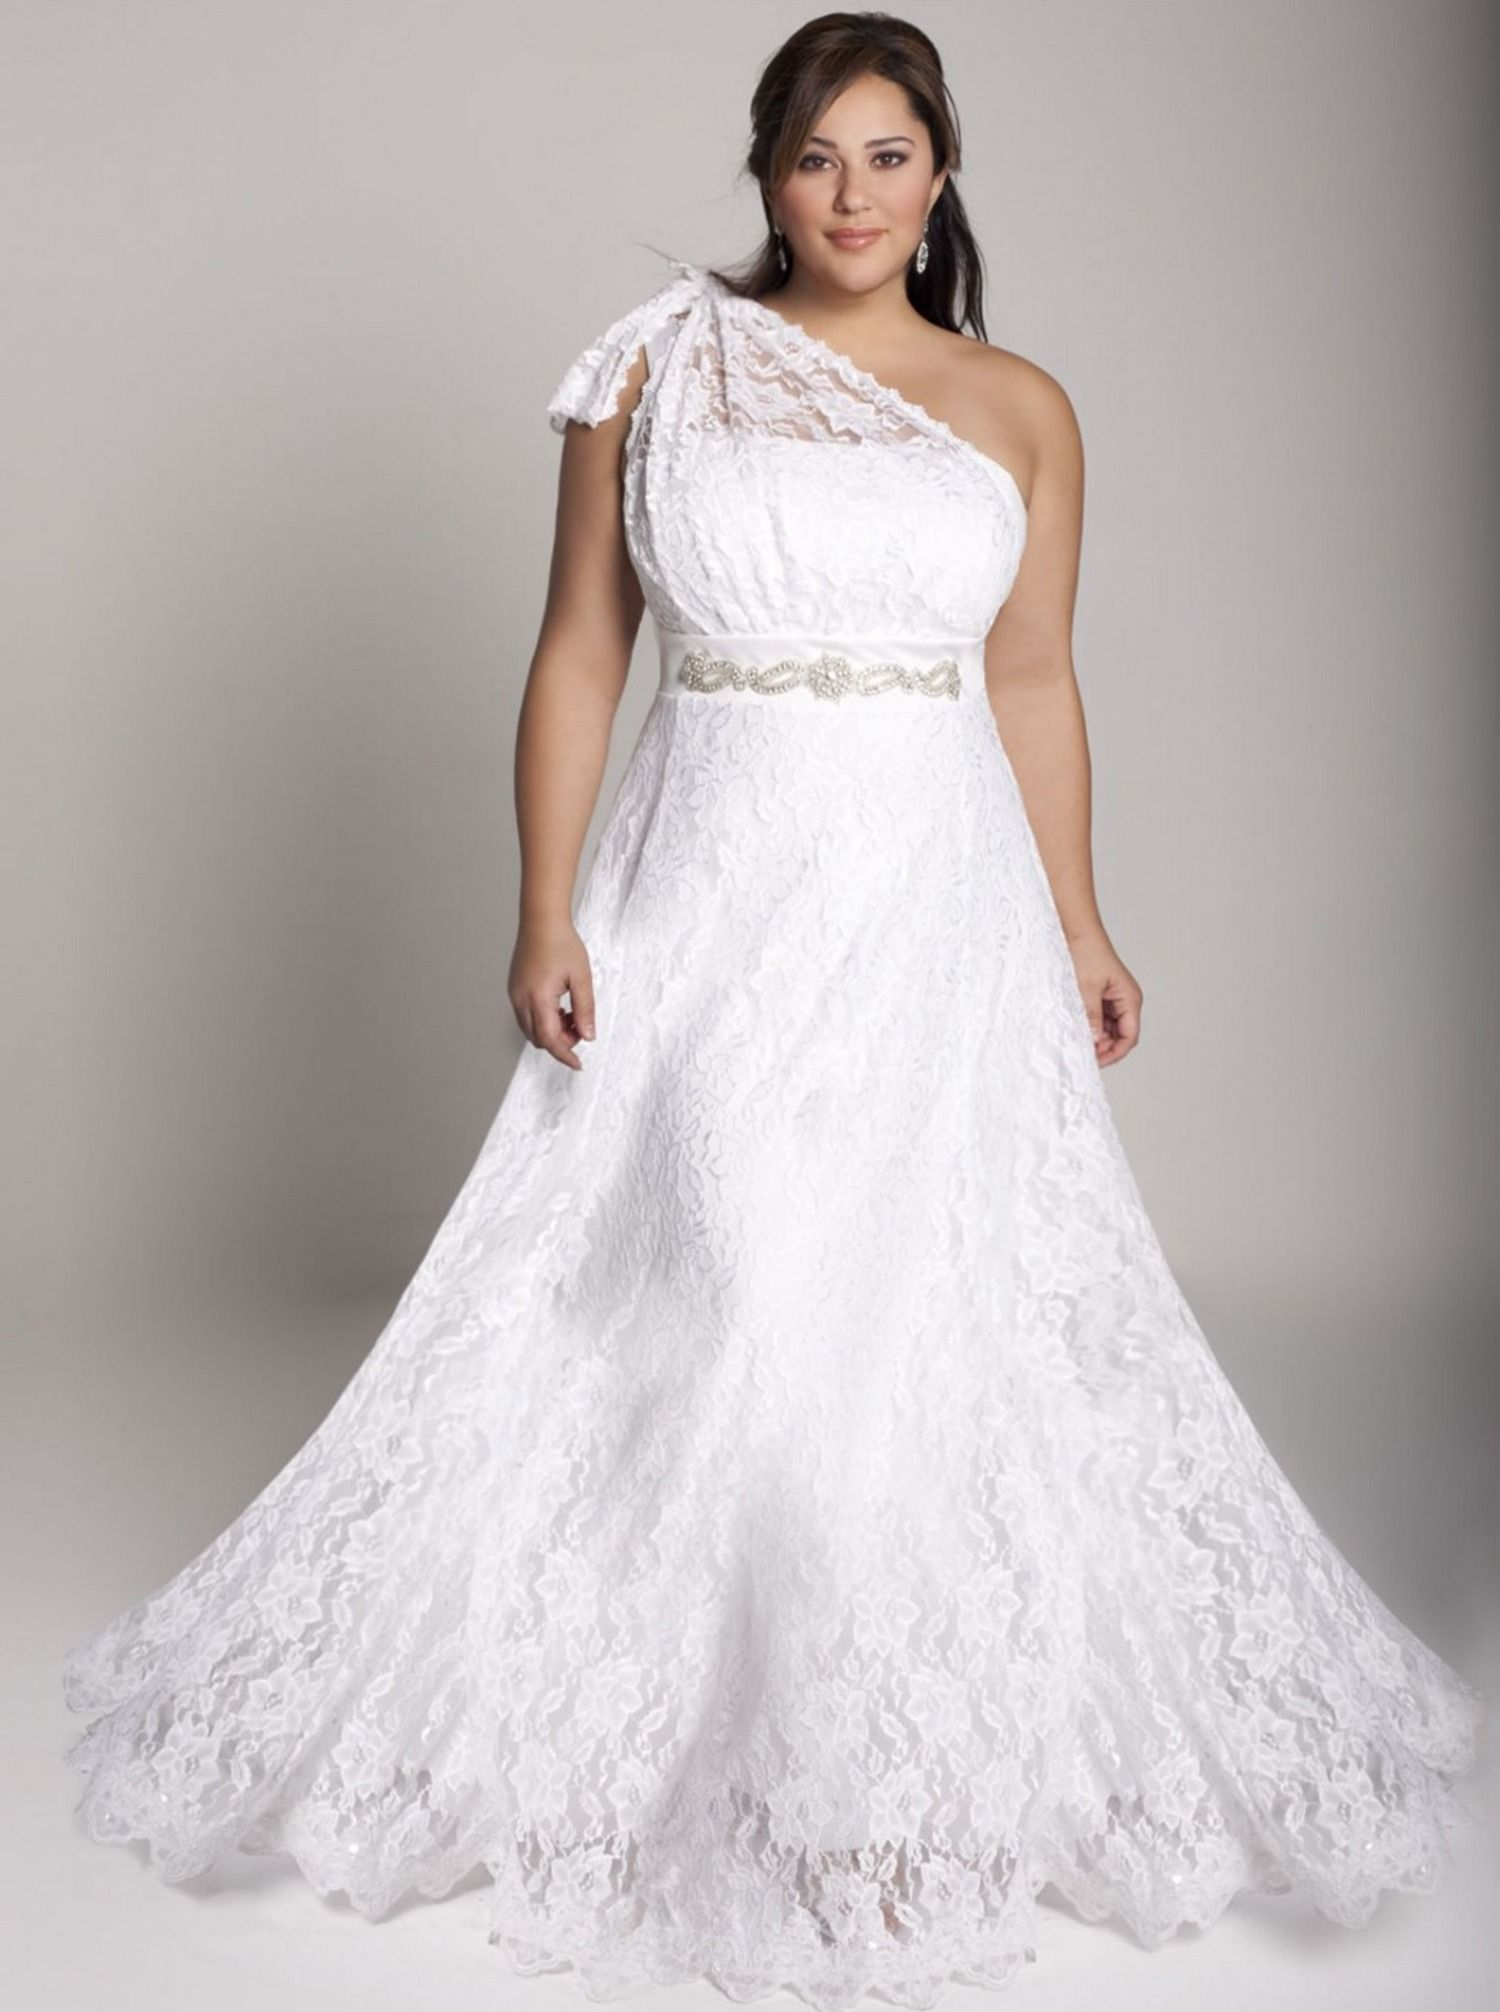 Plus size white wedding dresses  Yay A Site That Caters to PlusSize Brides Itus About Time